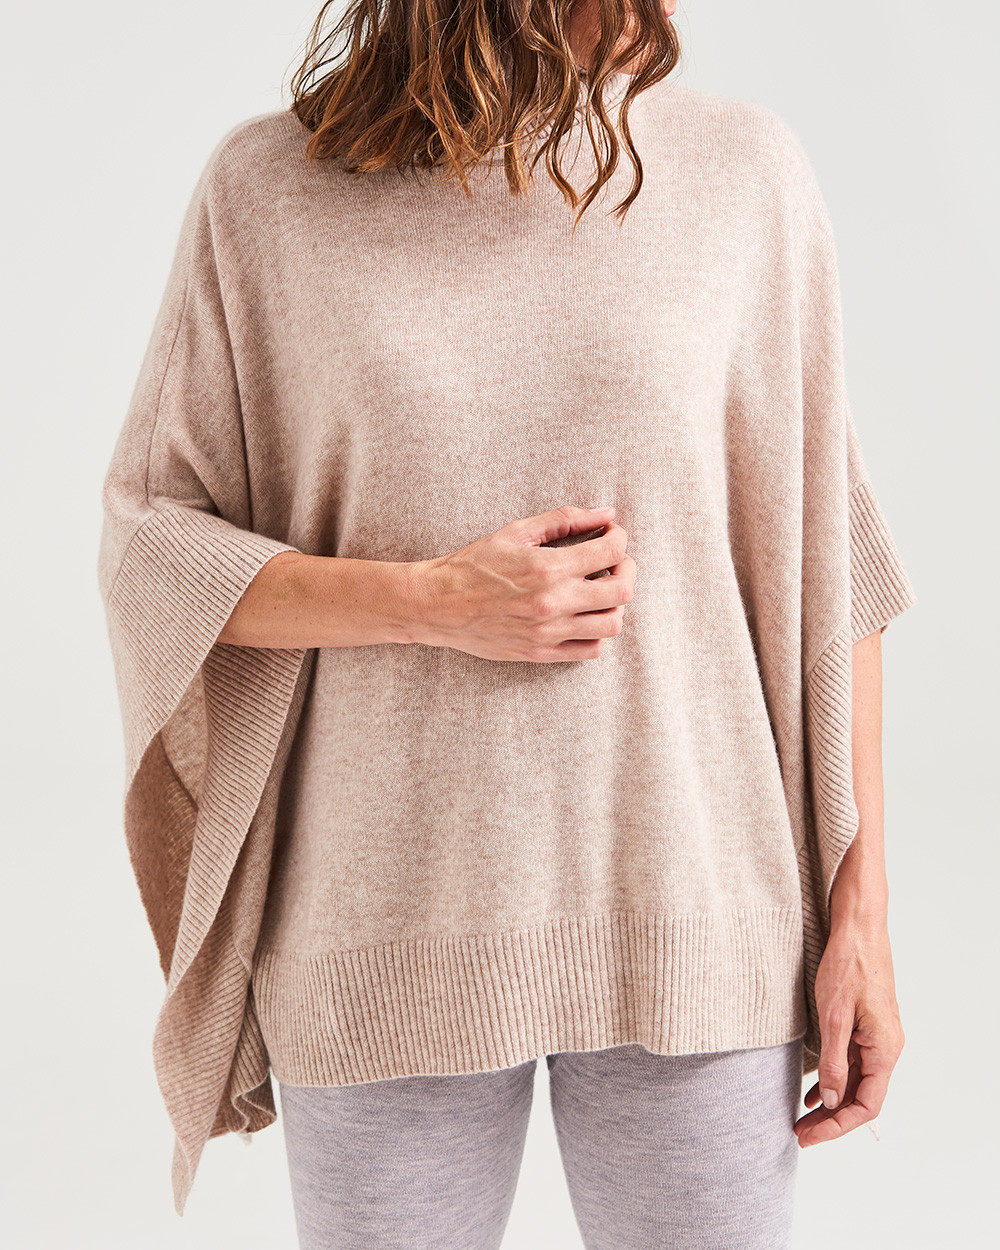 Sassind Cashmere poncho in oatmeal